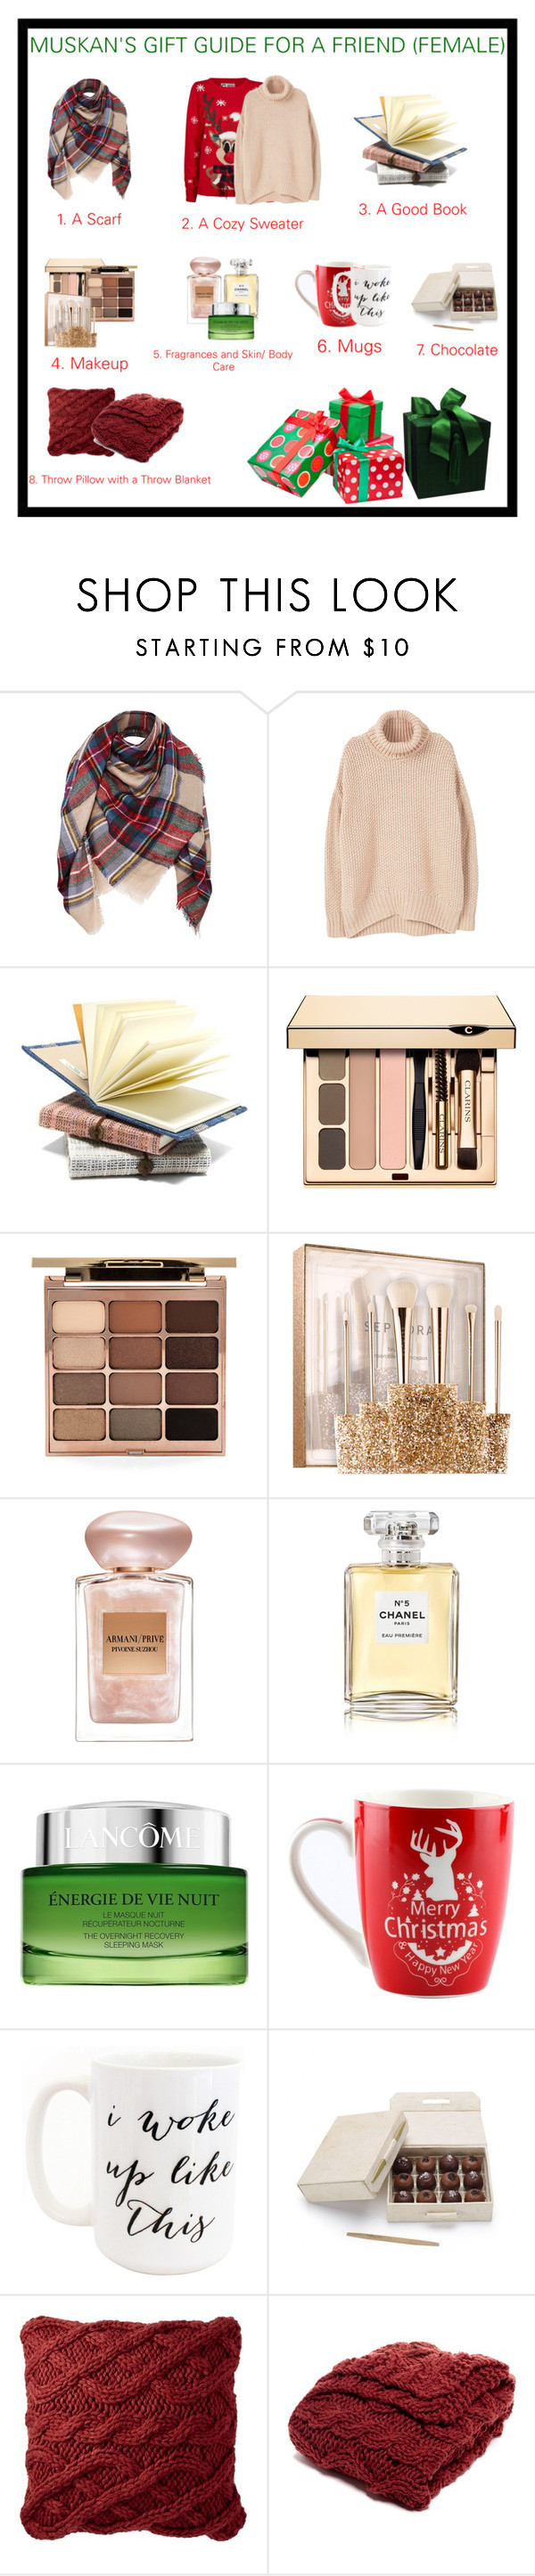 """""""Hope it helps!"""" by nagra-muskan ❤ liked on Polyvore featuring MANGO, Stila, Sephora Collection, Giorgio Armani, Chanel, Lancôme, Moon and Lola and Nordstrom"""